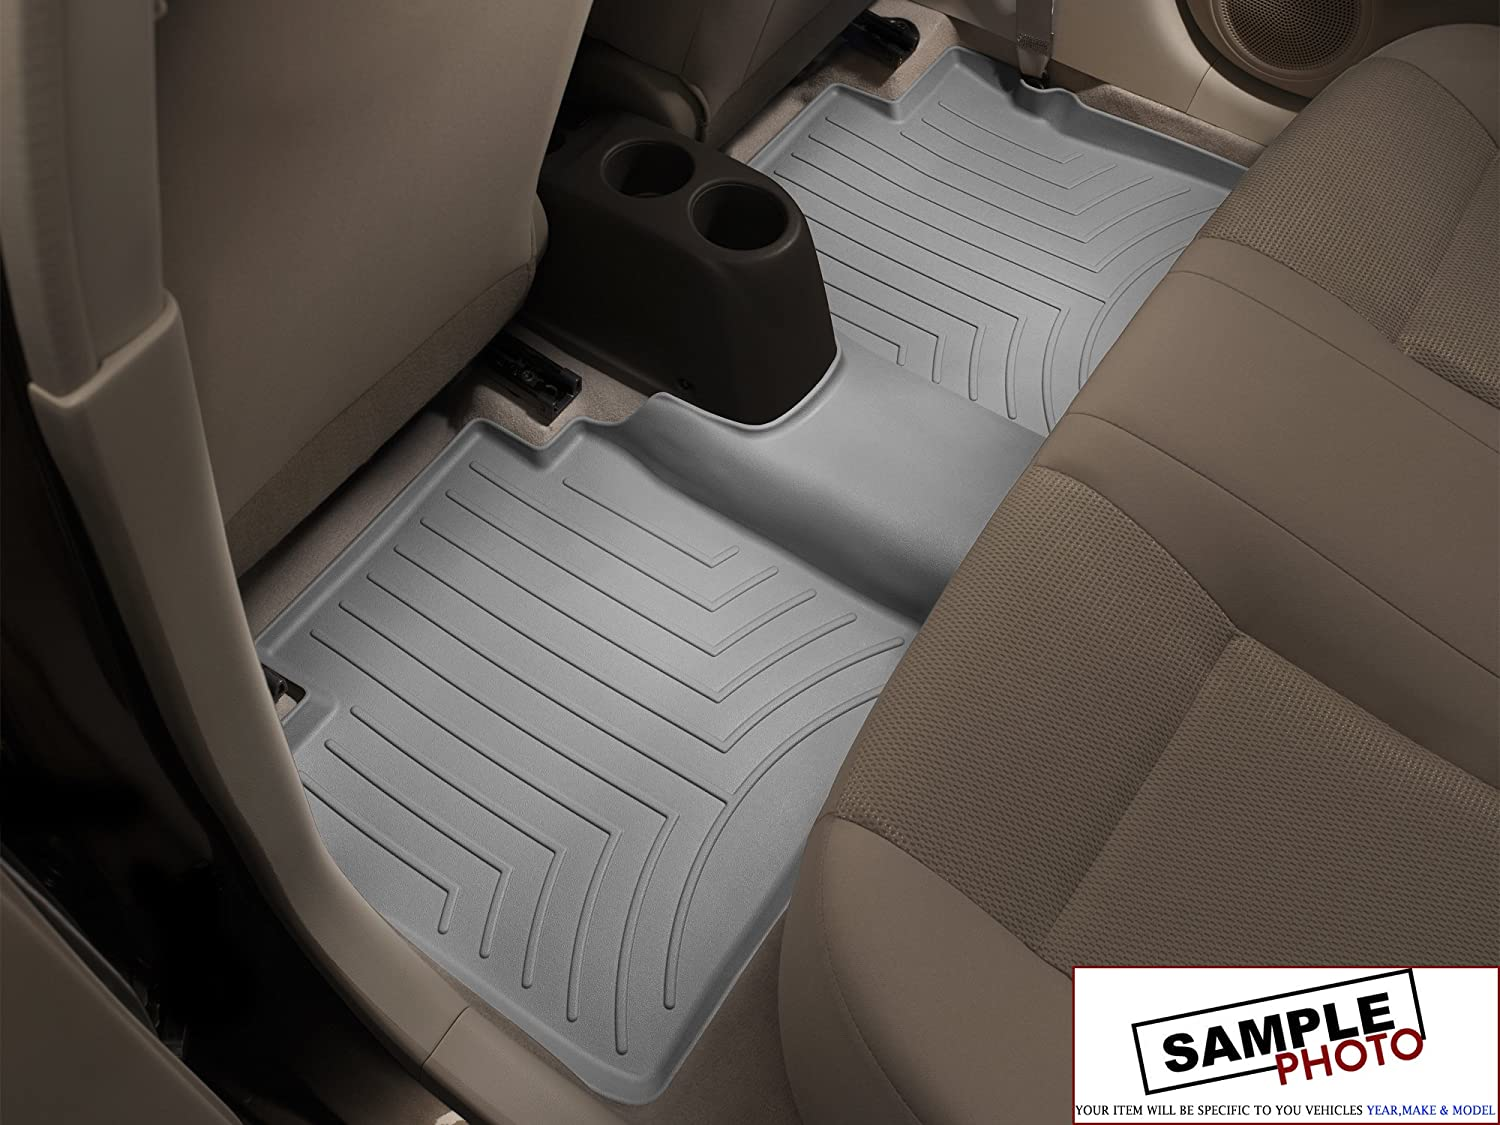 2014 Fiat 500 Abarth Cabrio Gray Weathertech Rear FloorLiner in Grey Rear FloorLiner